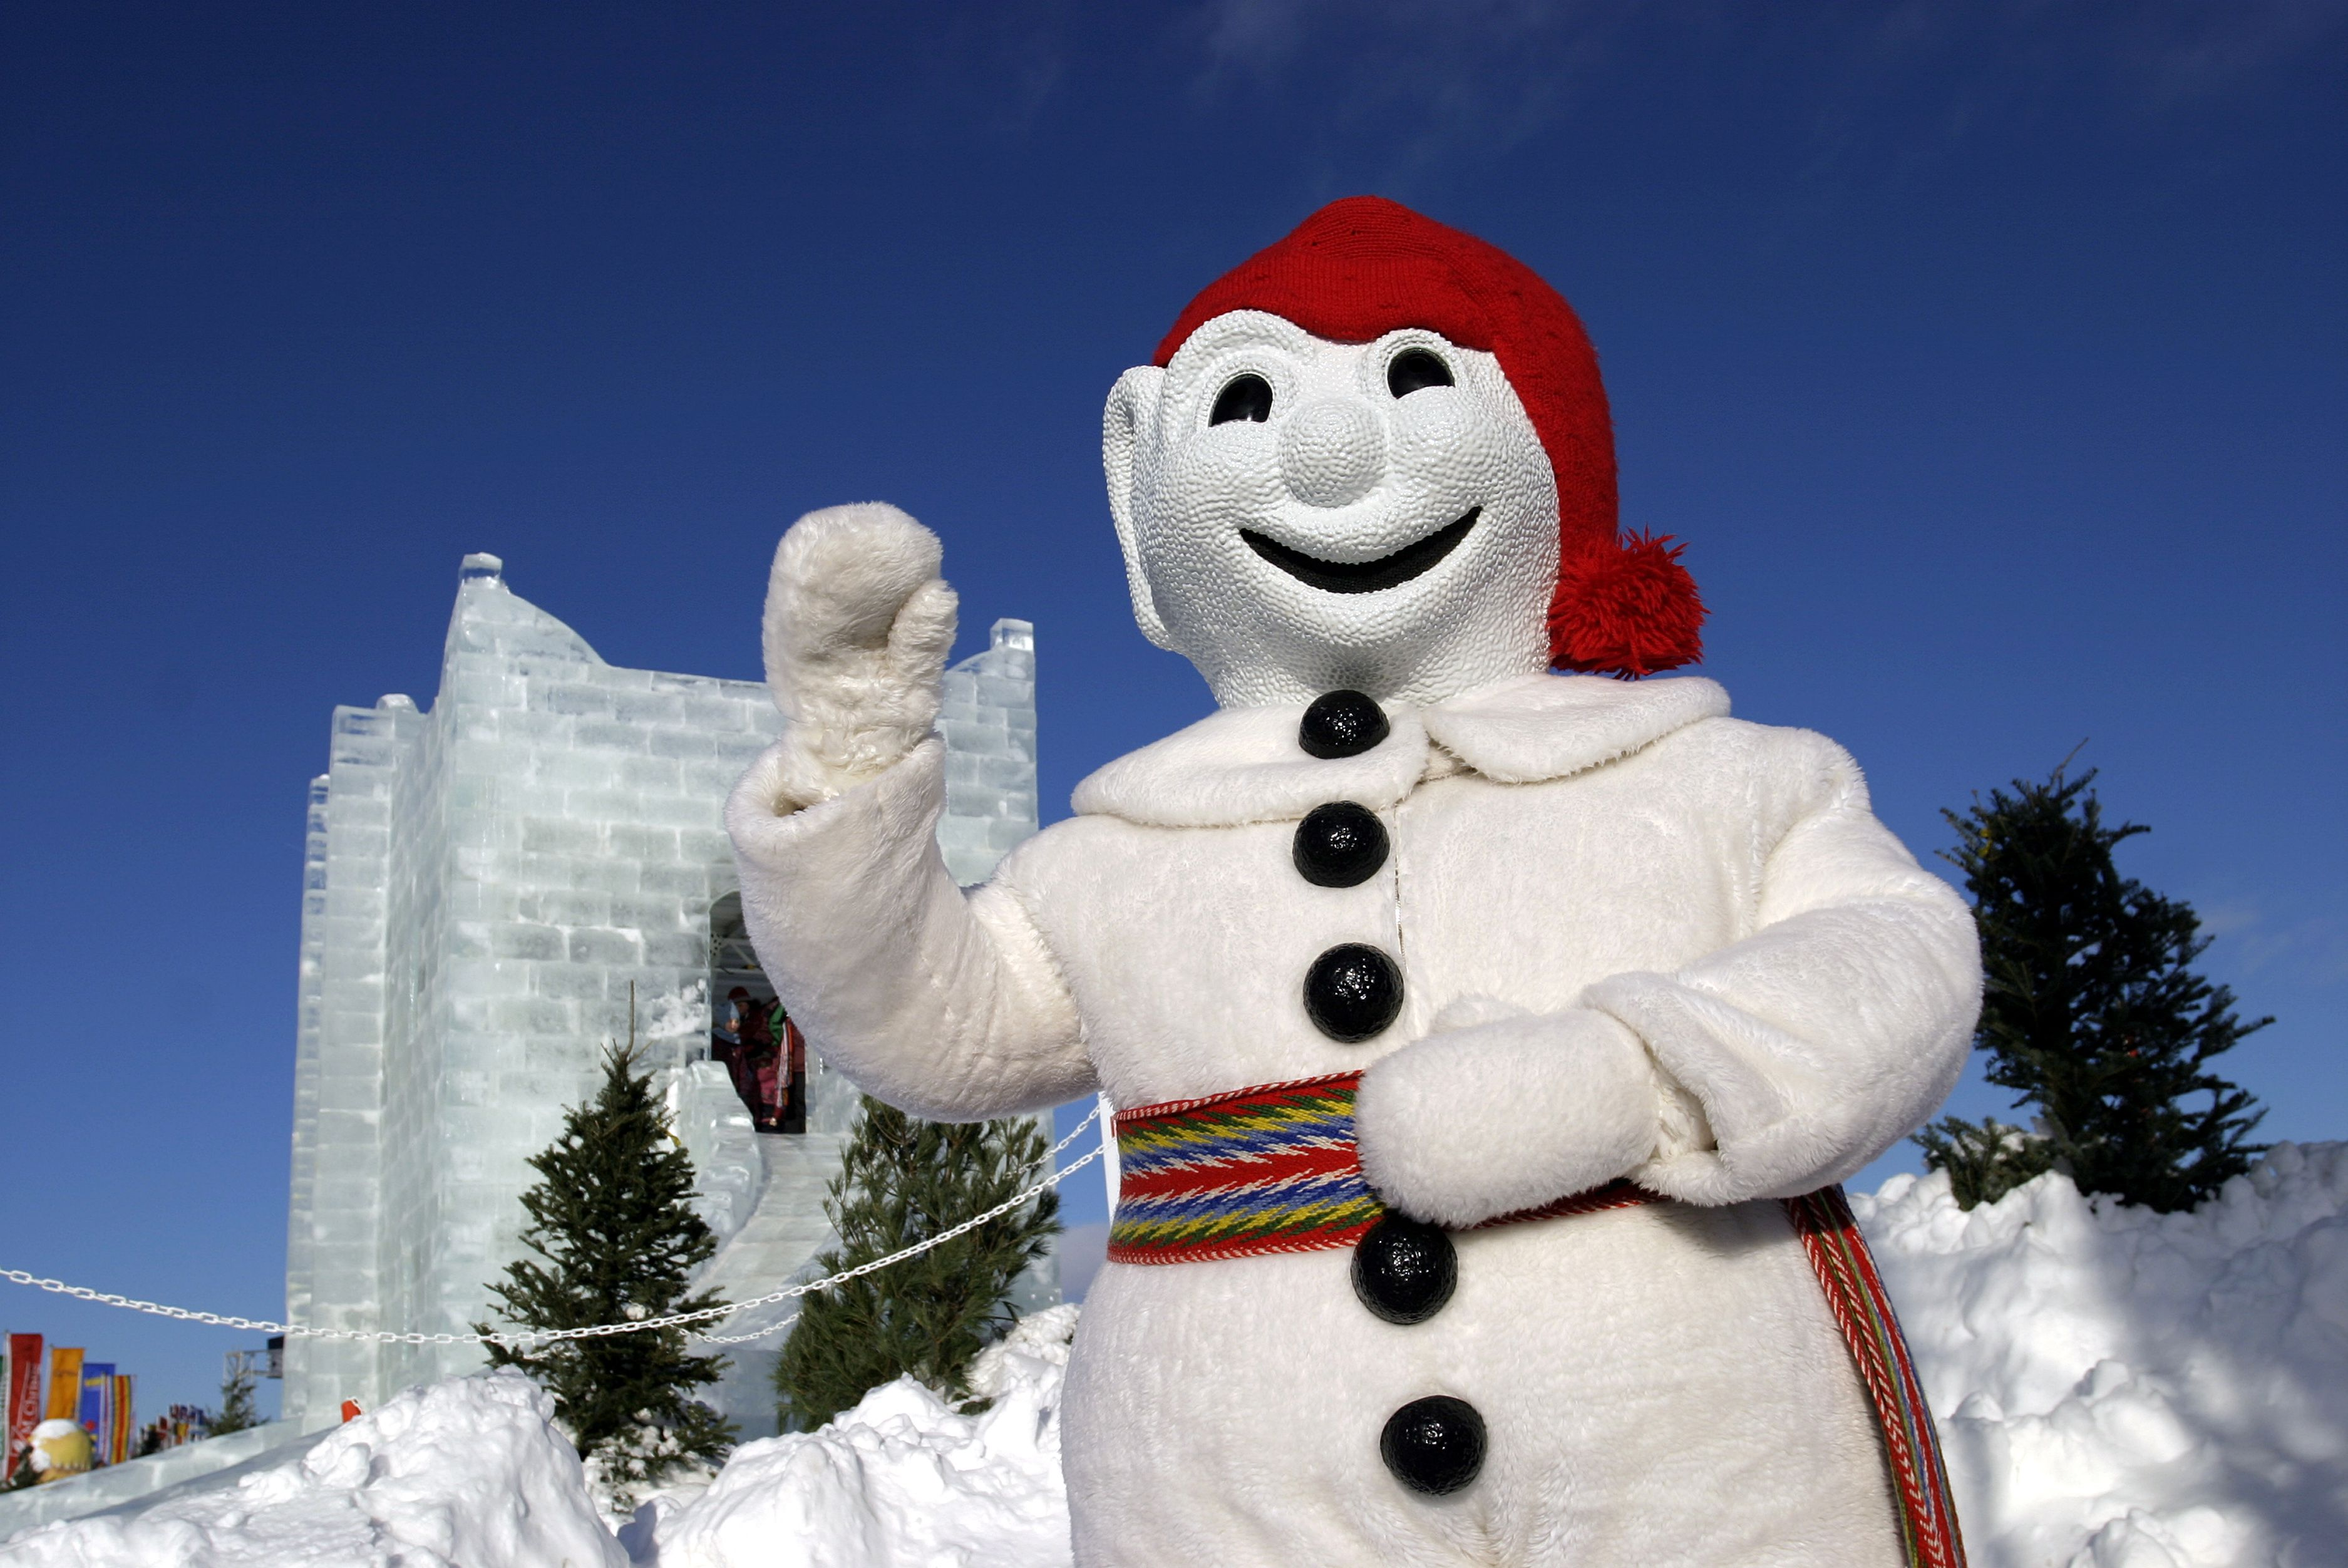 Canada, Quebec Province, Quebec city Winter carnival, Bonhomme, the mascot of the carnival